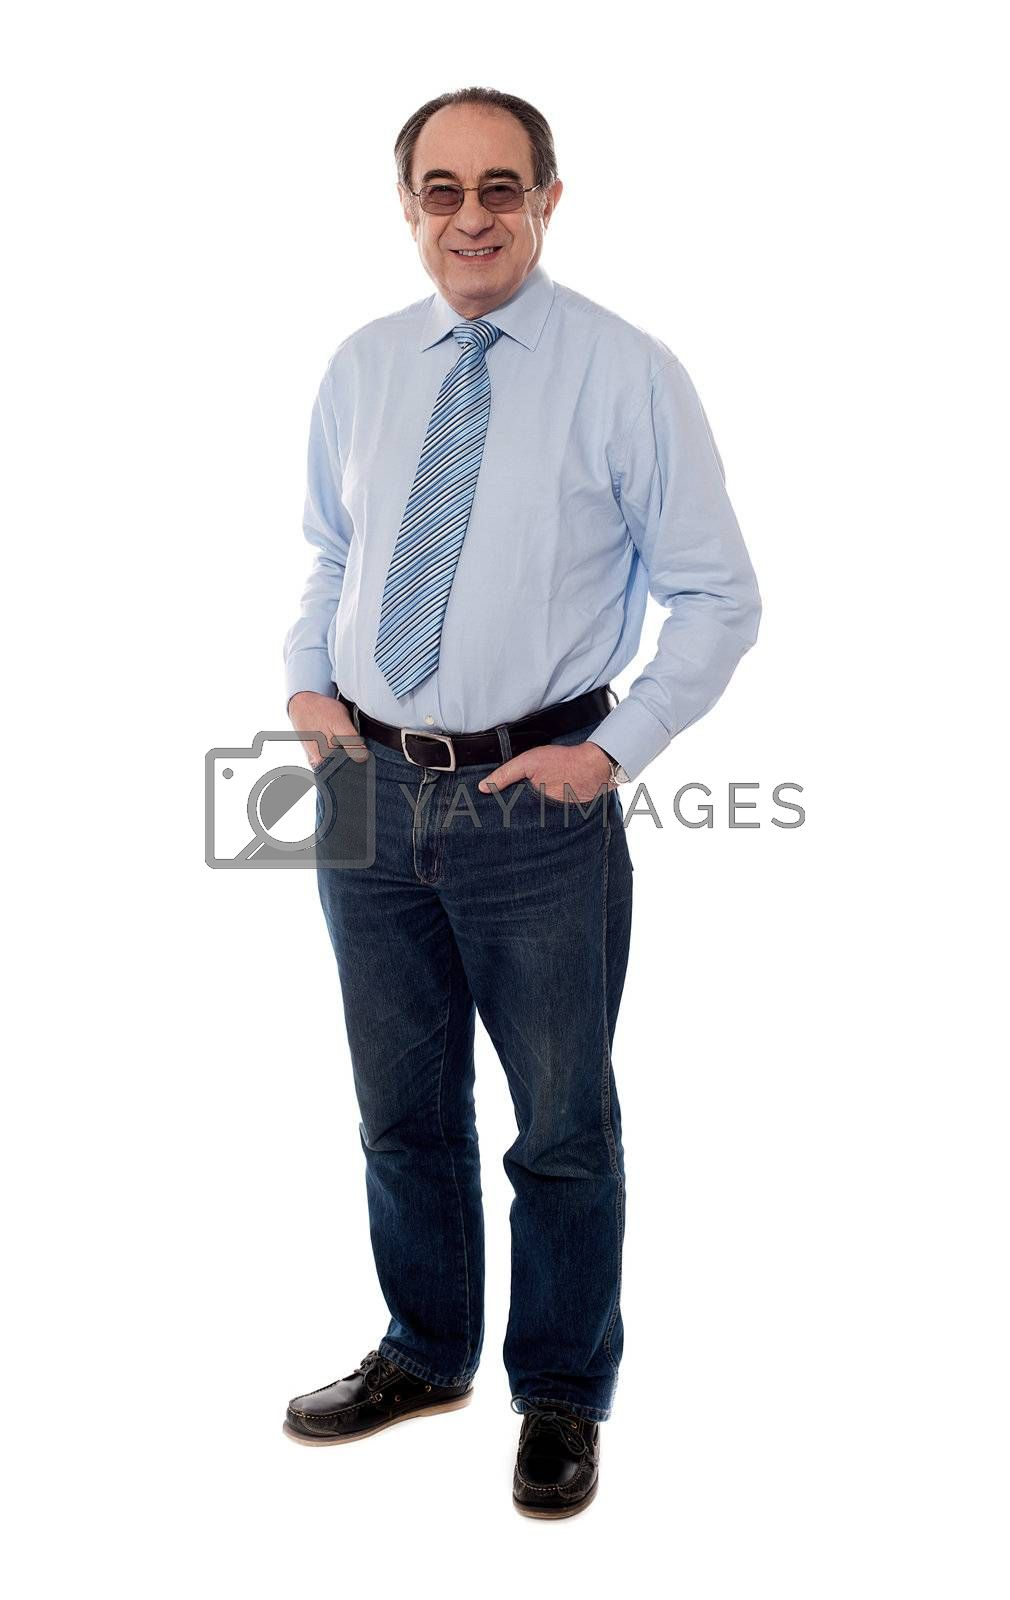 Relaxed old man posing with hands in pocket, casual style